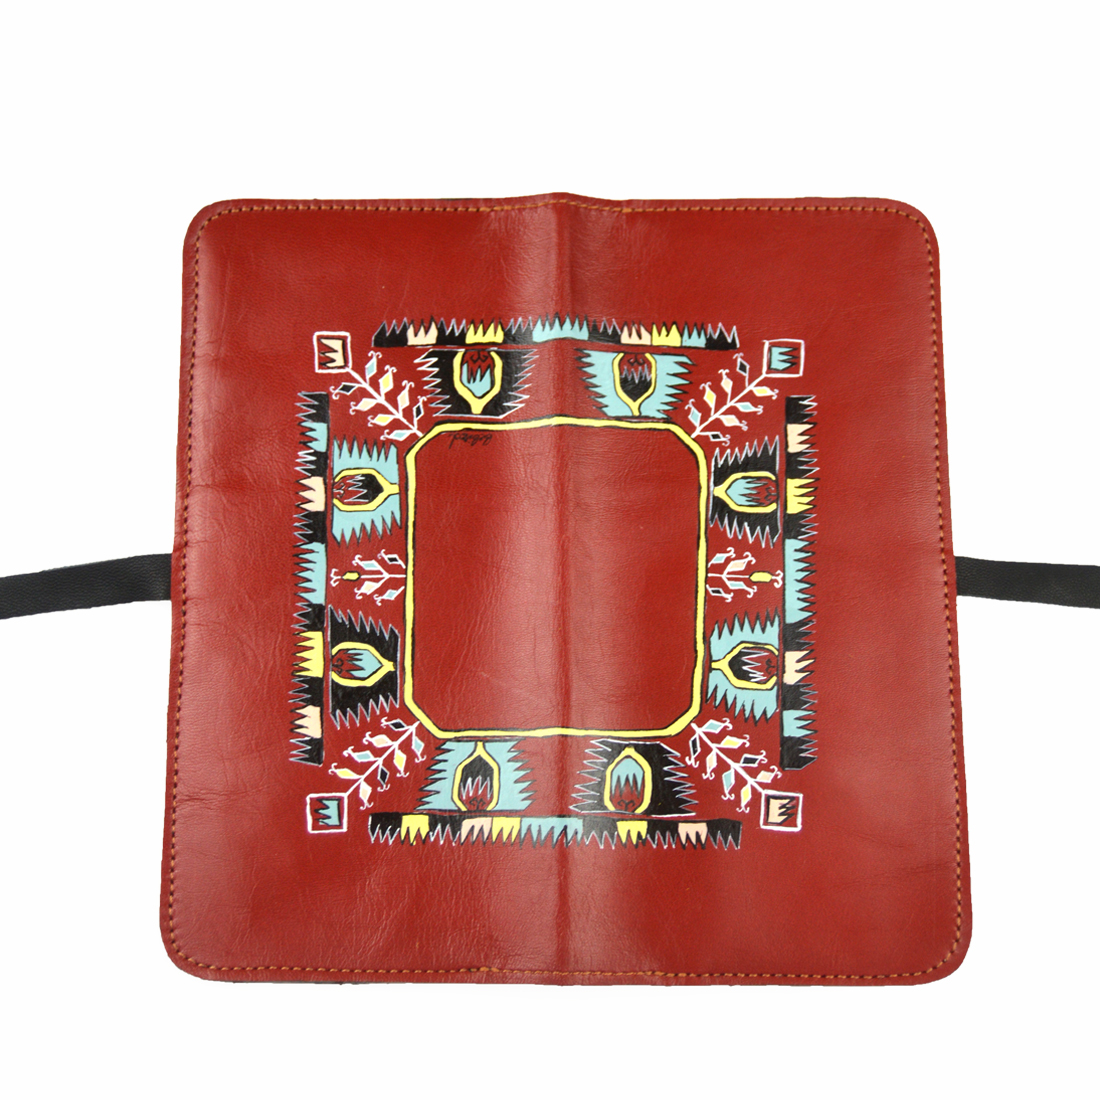 red_wallet_leather_03